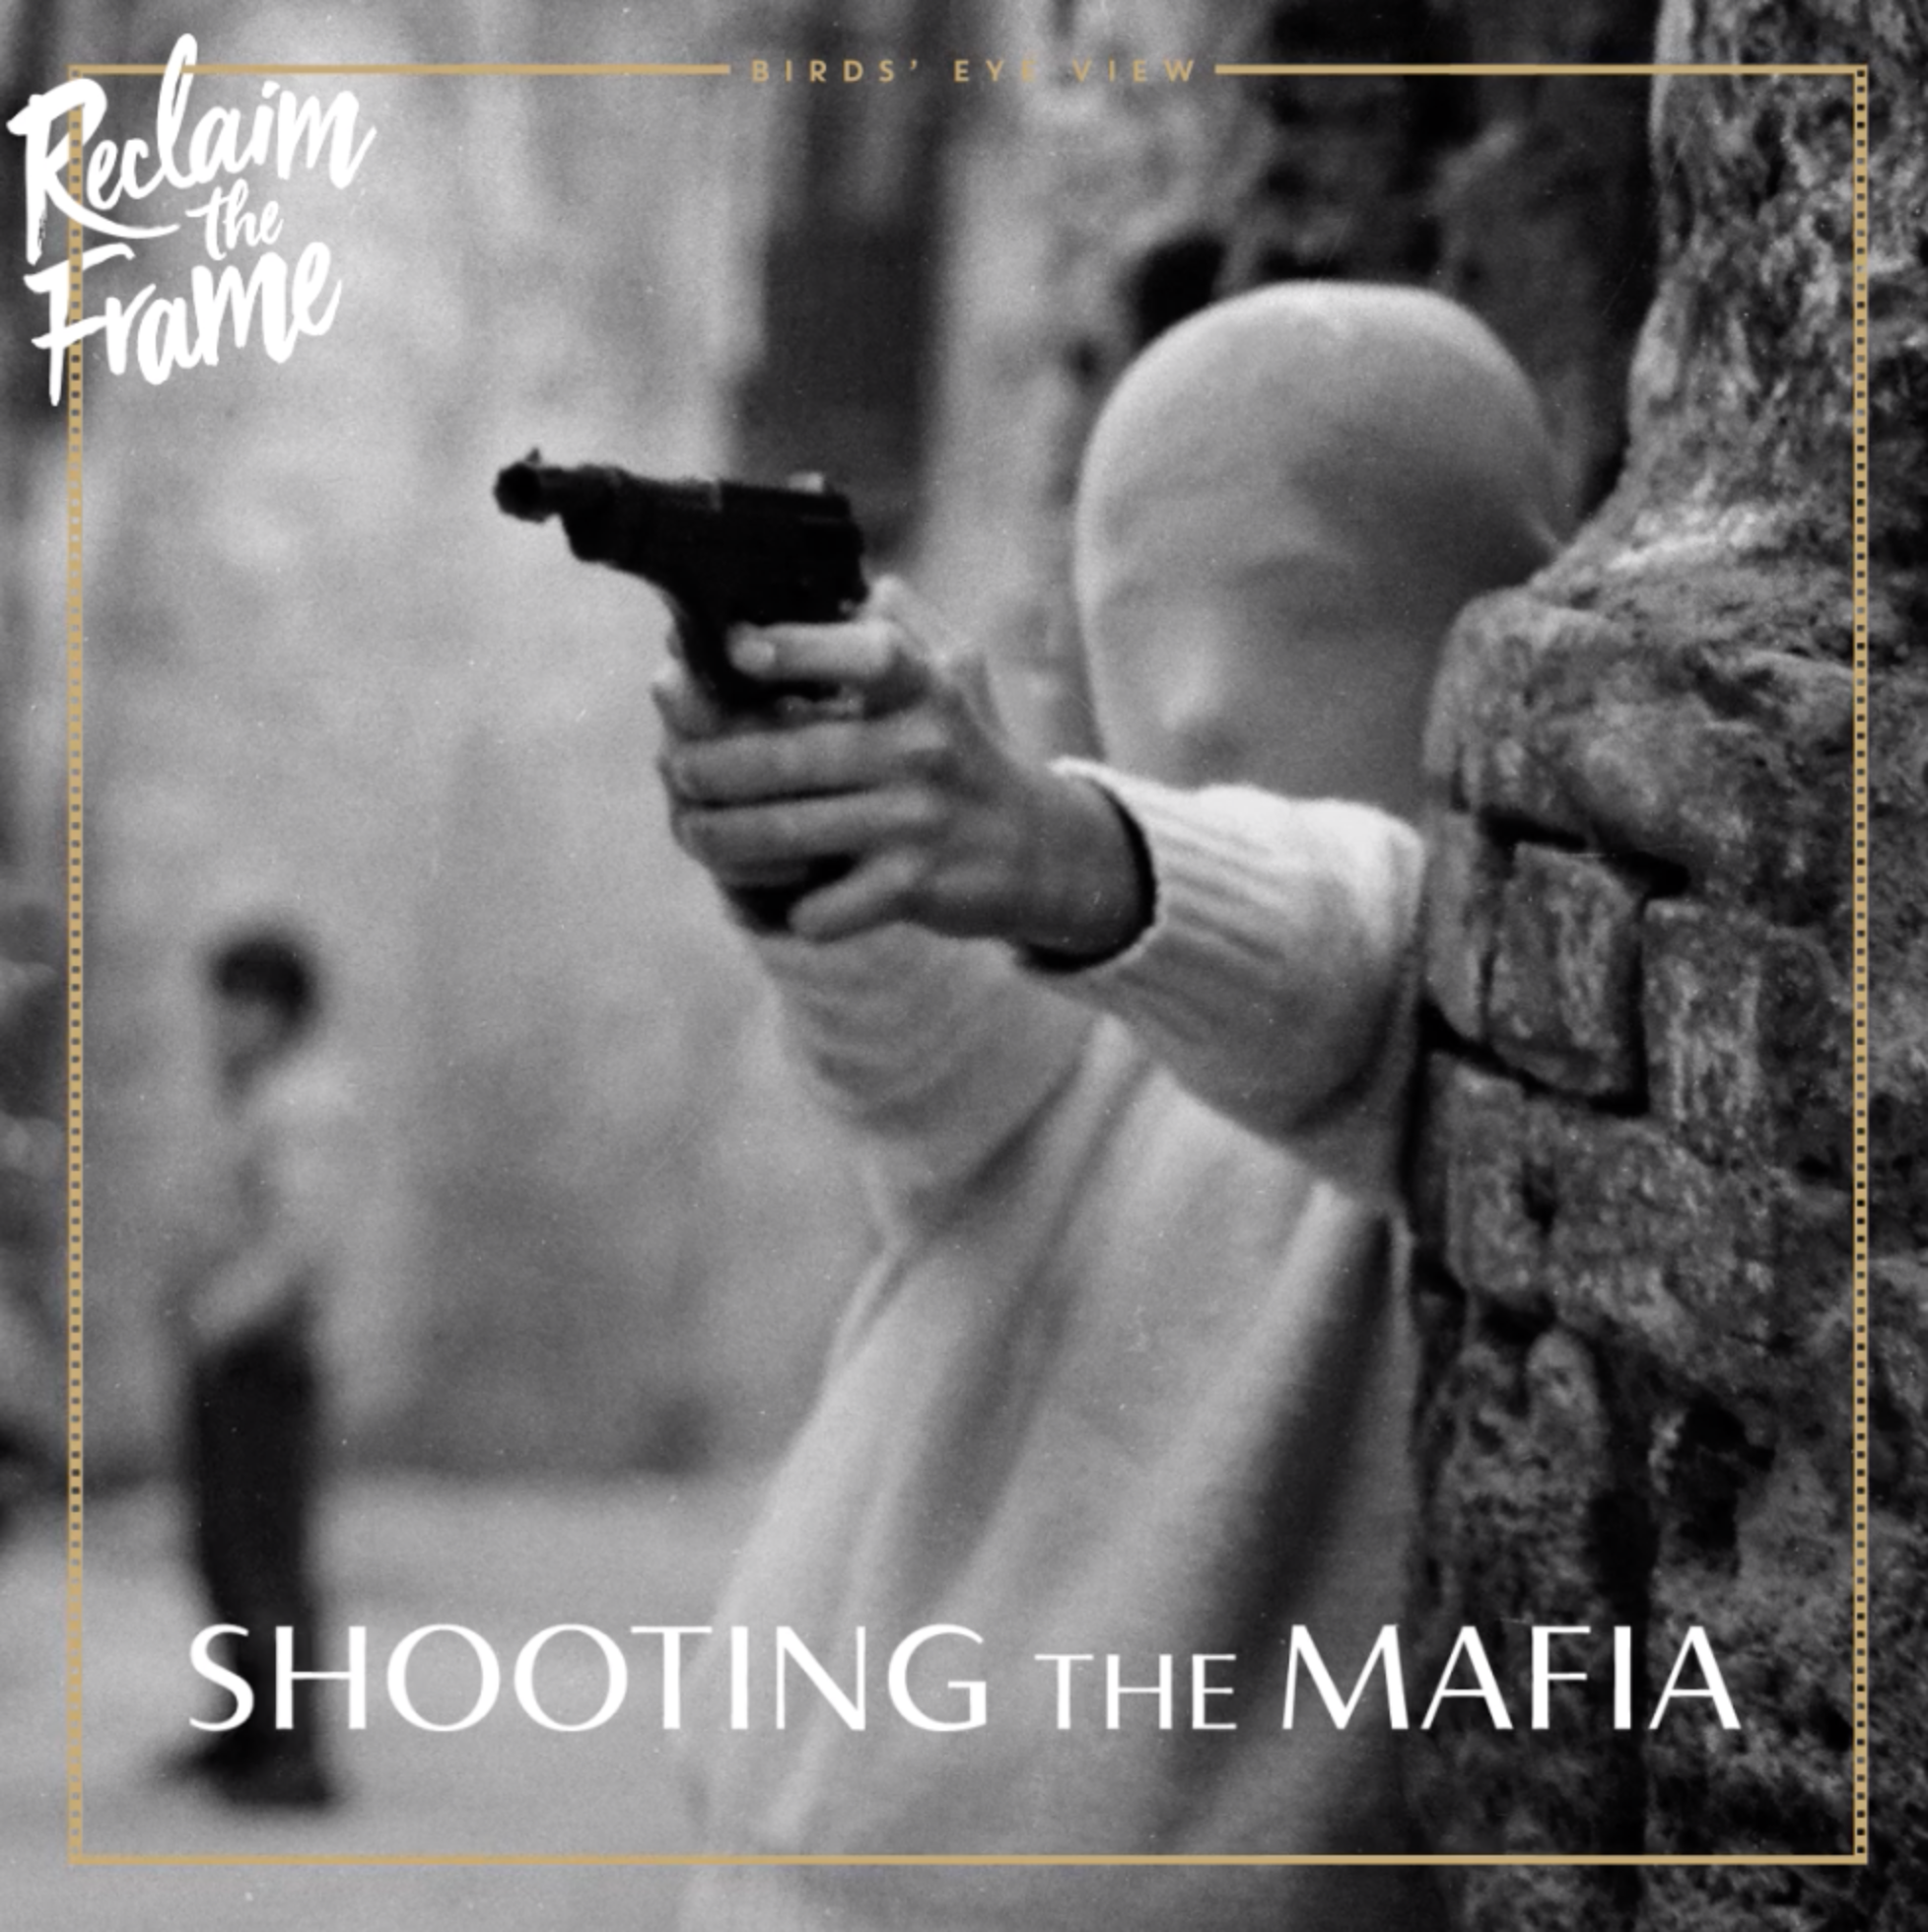 Shooting the Mafia (15)